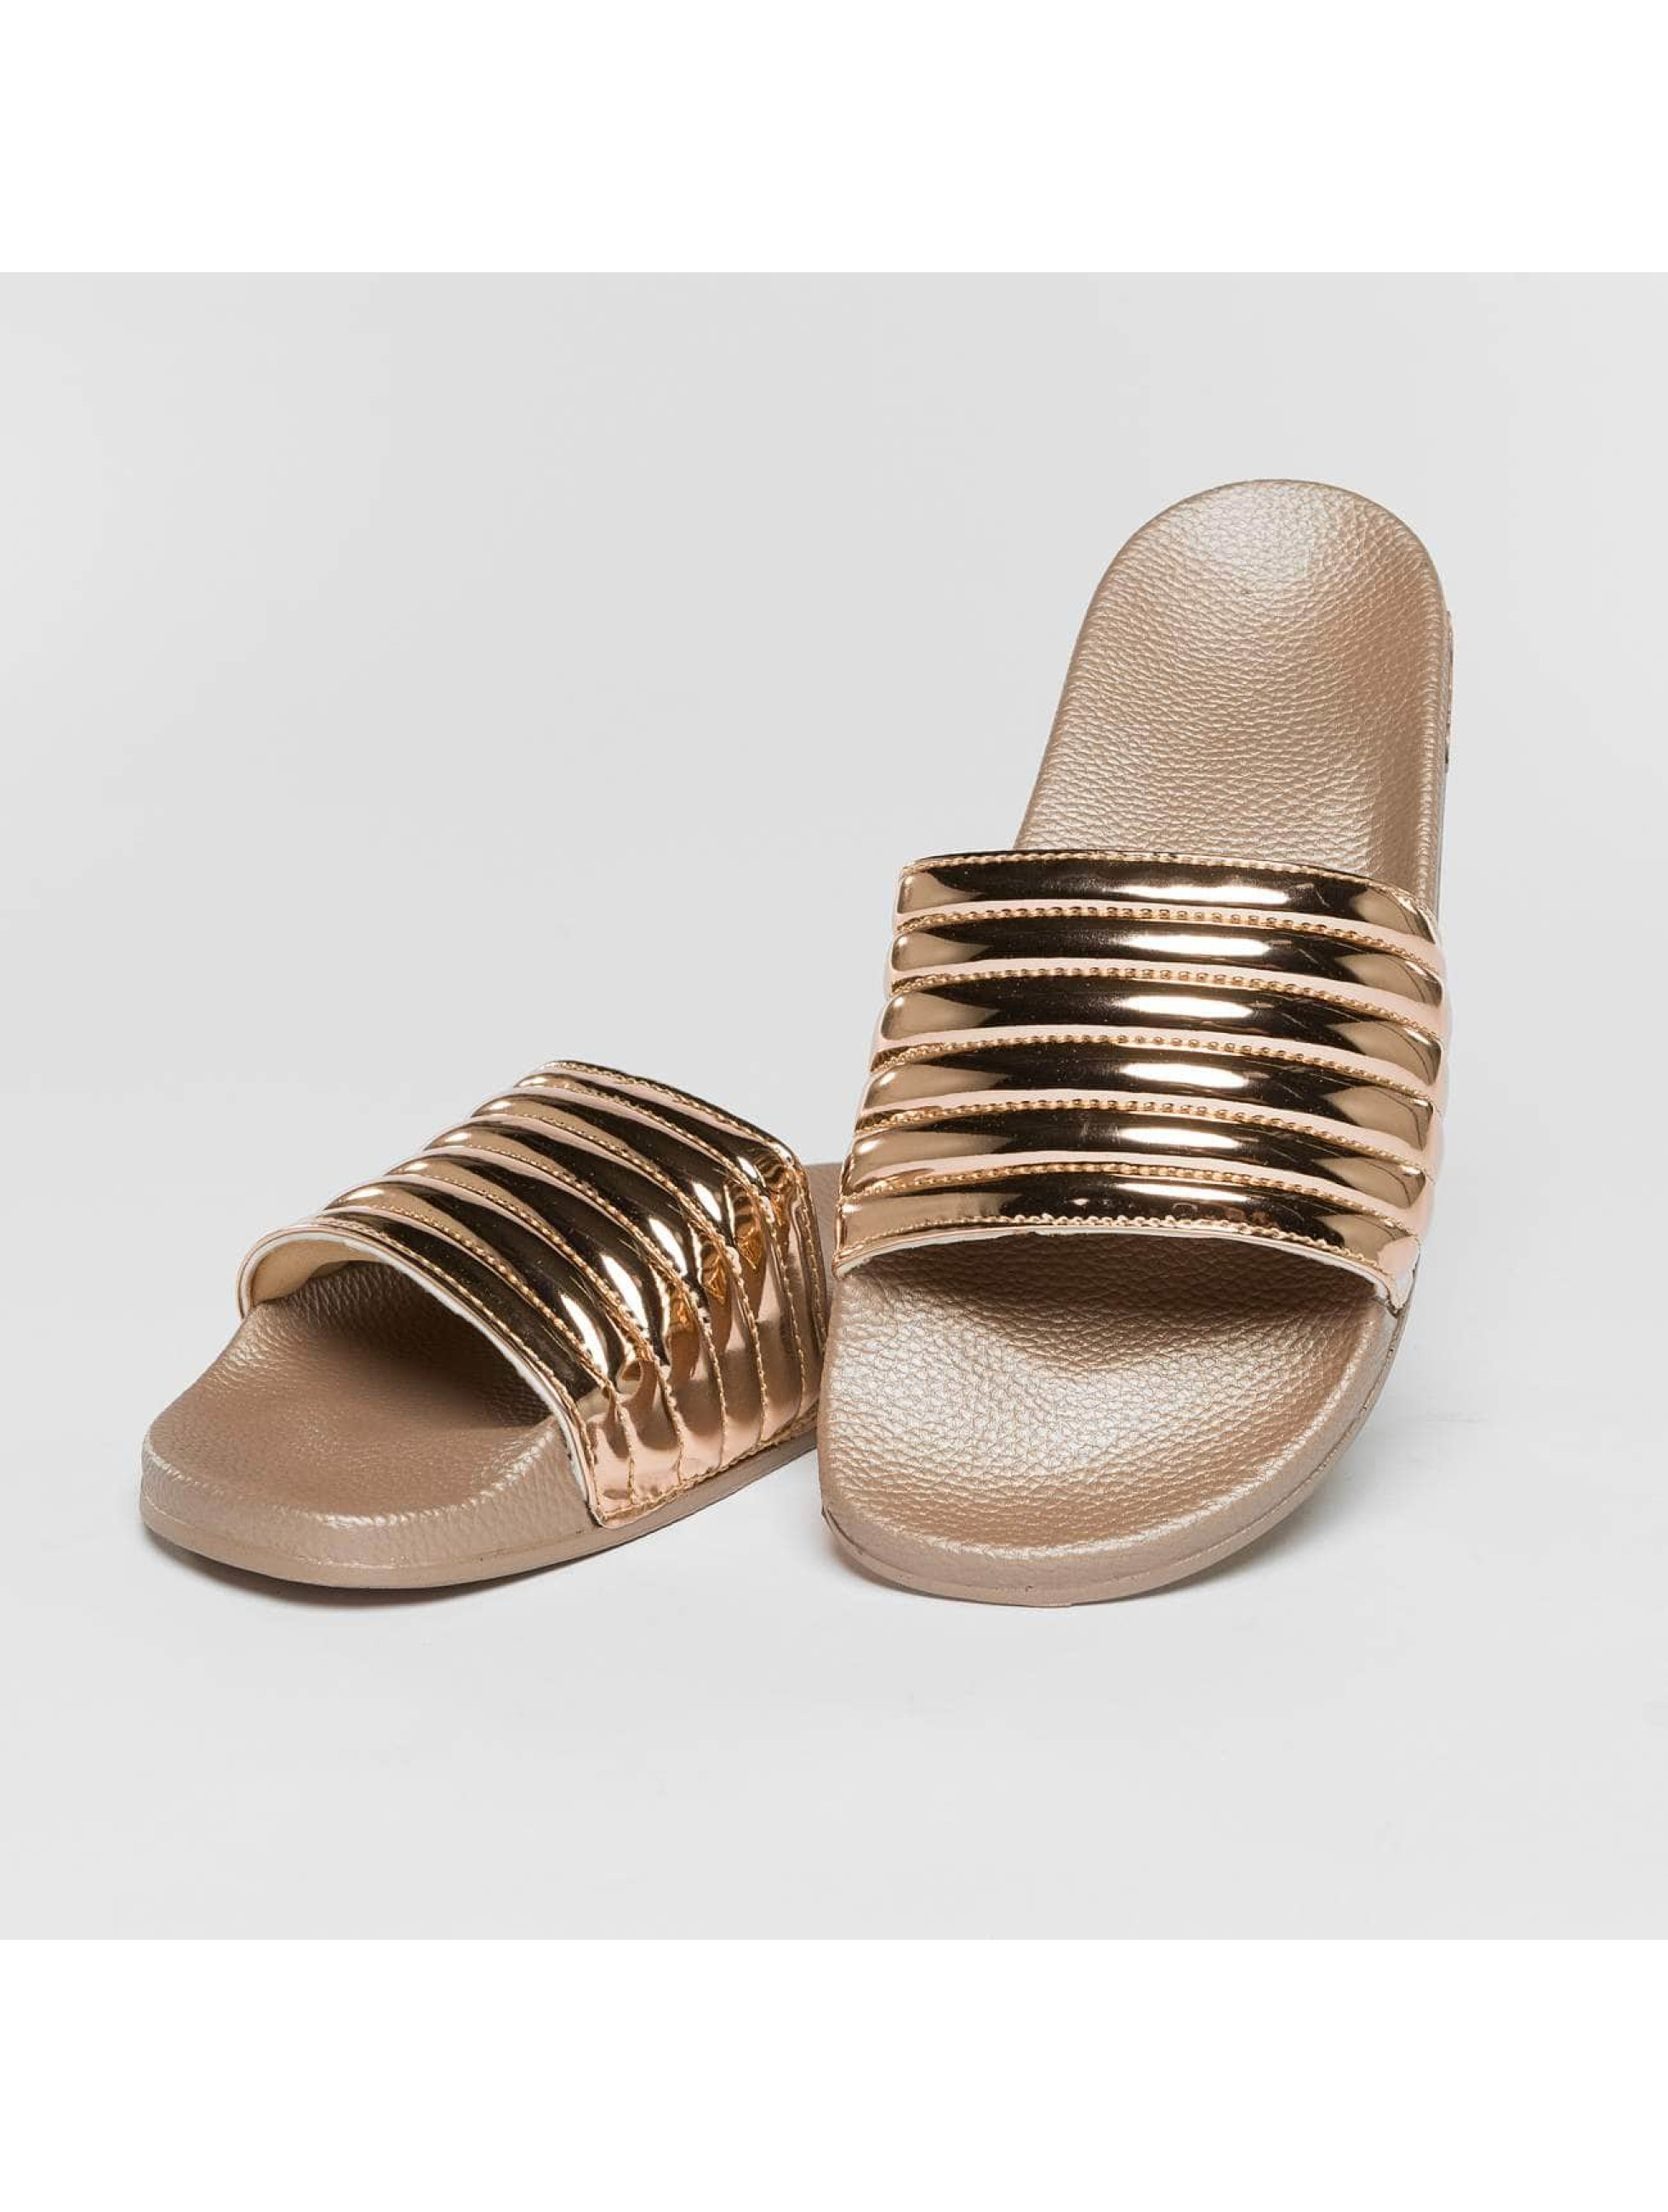 Slydes Sandals Port gold colored